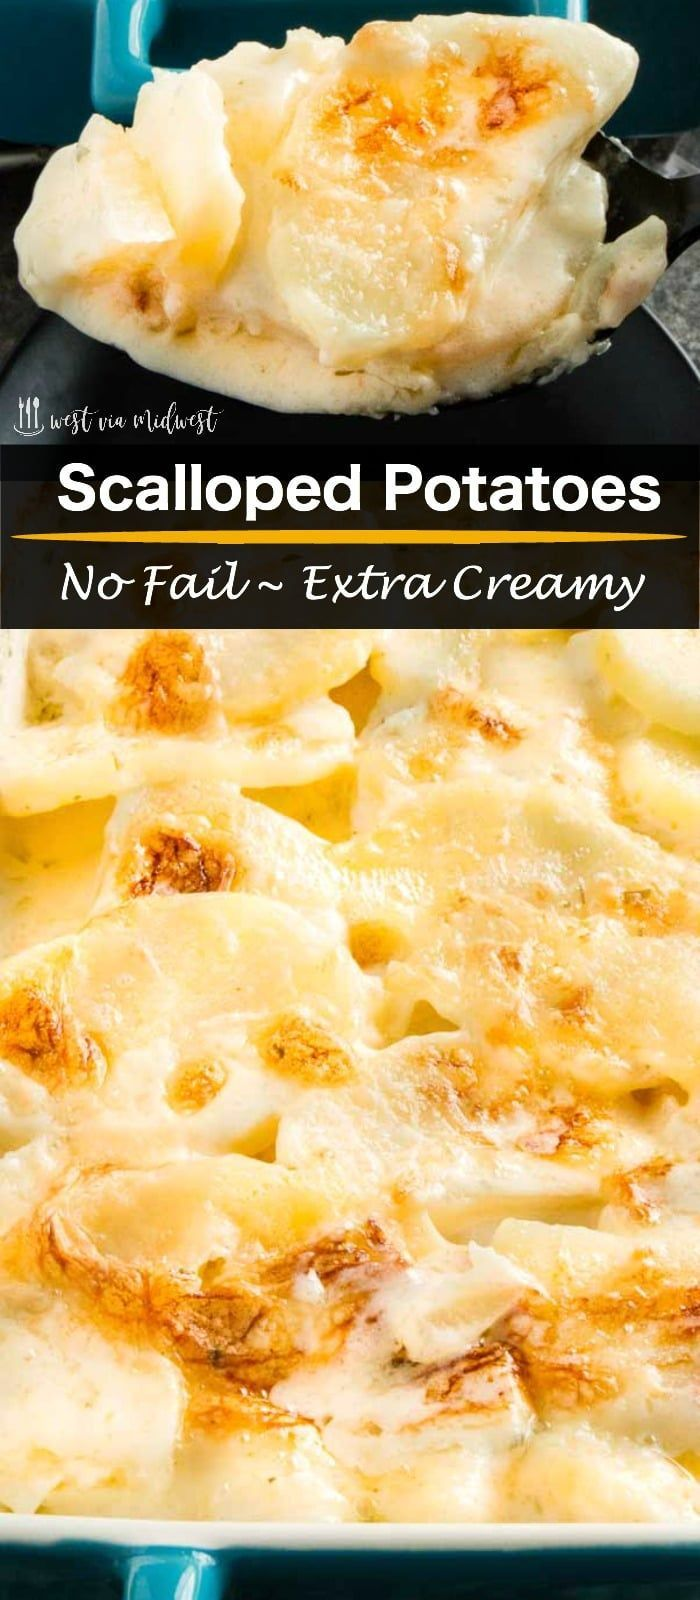 This extra creamy, easy scalloped potatoes recipe is the easiest side dish ever. Thick velvety sauce surrounds perfectly cooked potatoes. Ideal for entertaining because you can make them ahead and just warm them to serve them.#sidedish #scallopedpotatoes www.westviamidwest.com via @westviamidwest